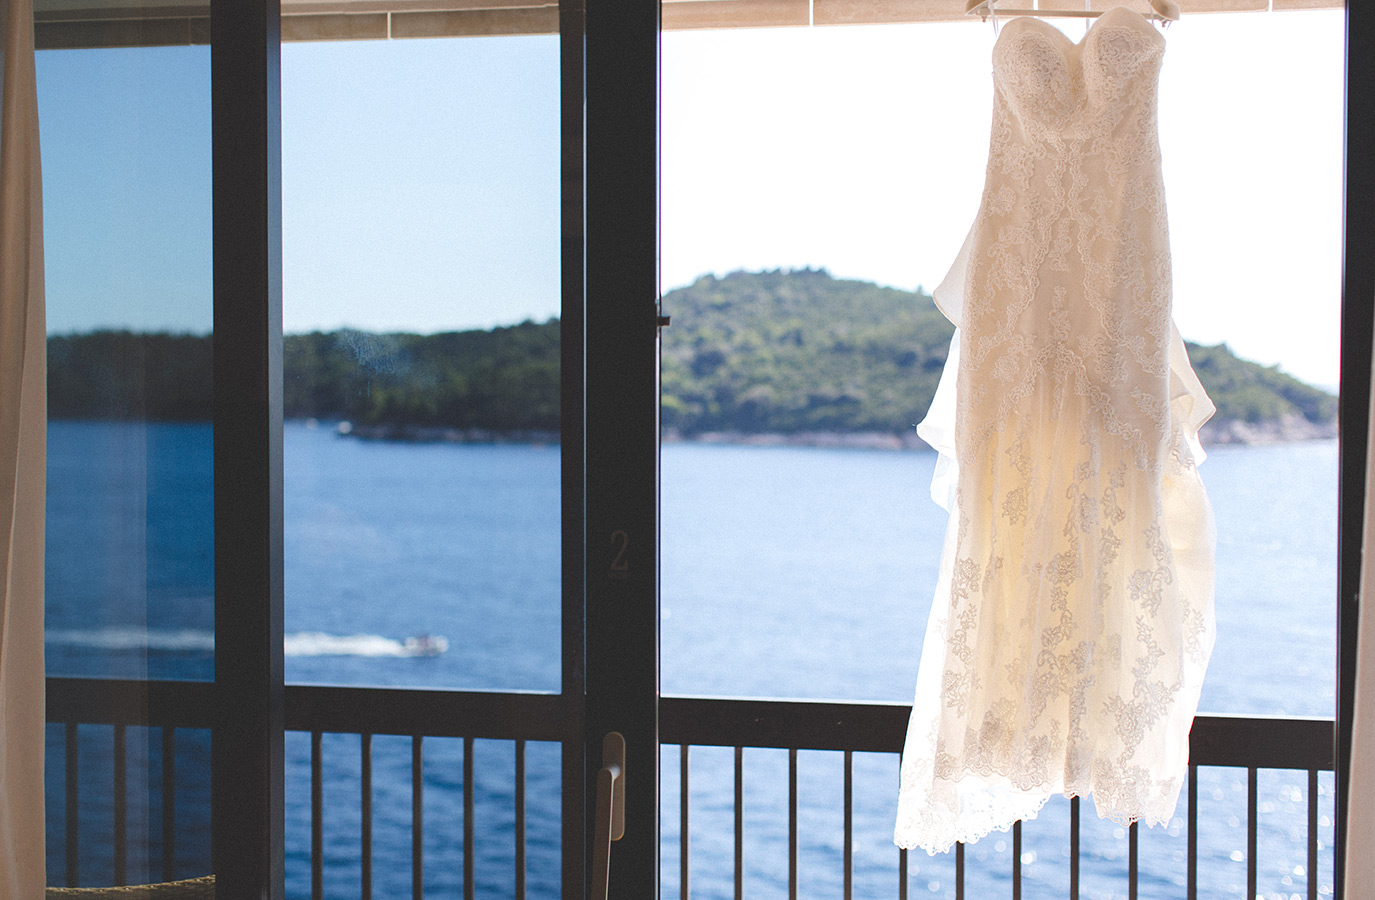 One of a set of images taken at this chic destination Wedding of Jenna & Nick. The stylish old town of Dubrovnik, Croatia.  The Wedding dress blows in the wind.  Photography by Matt Porteous